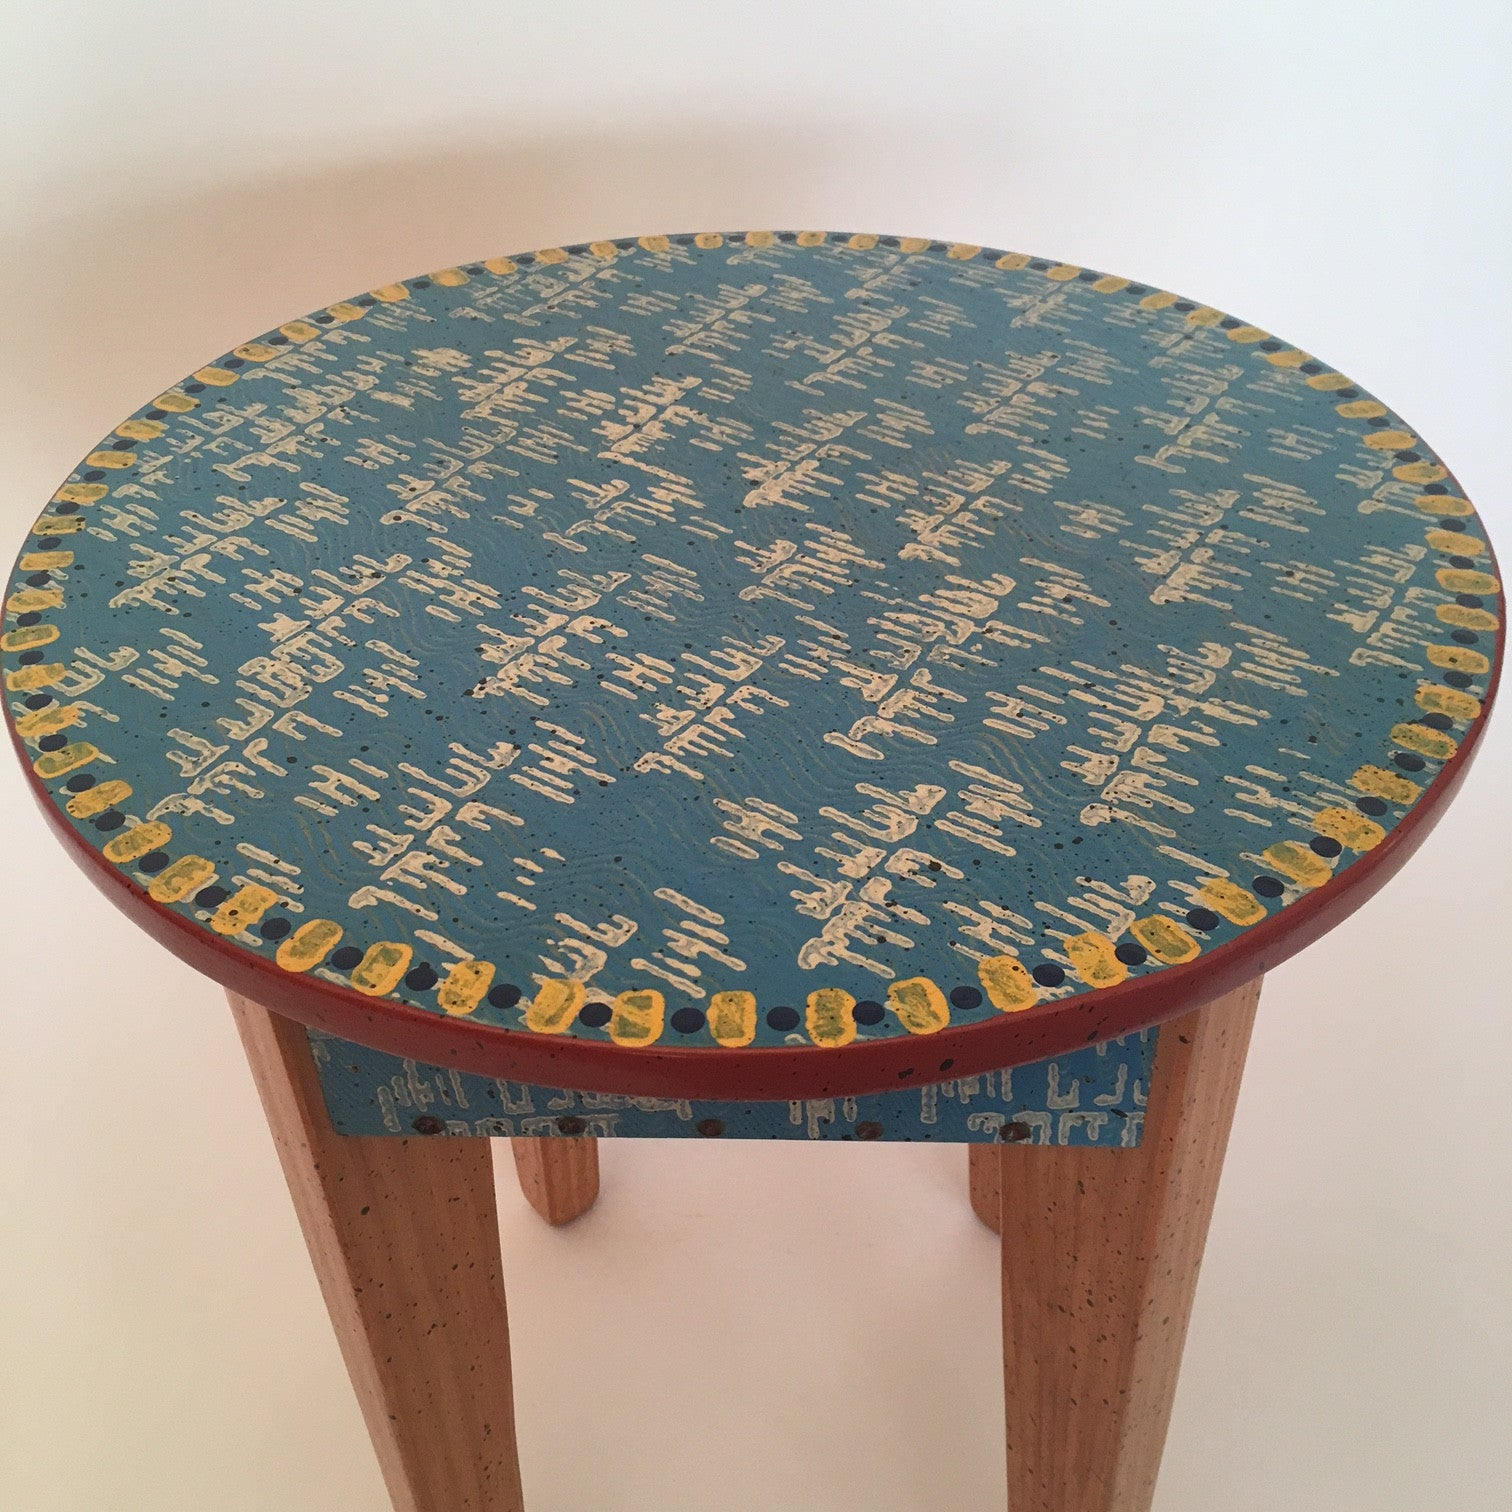 "David Marsh 18"" Round Table"